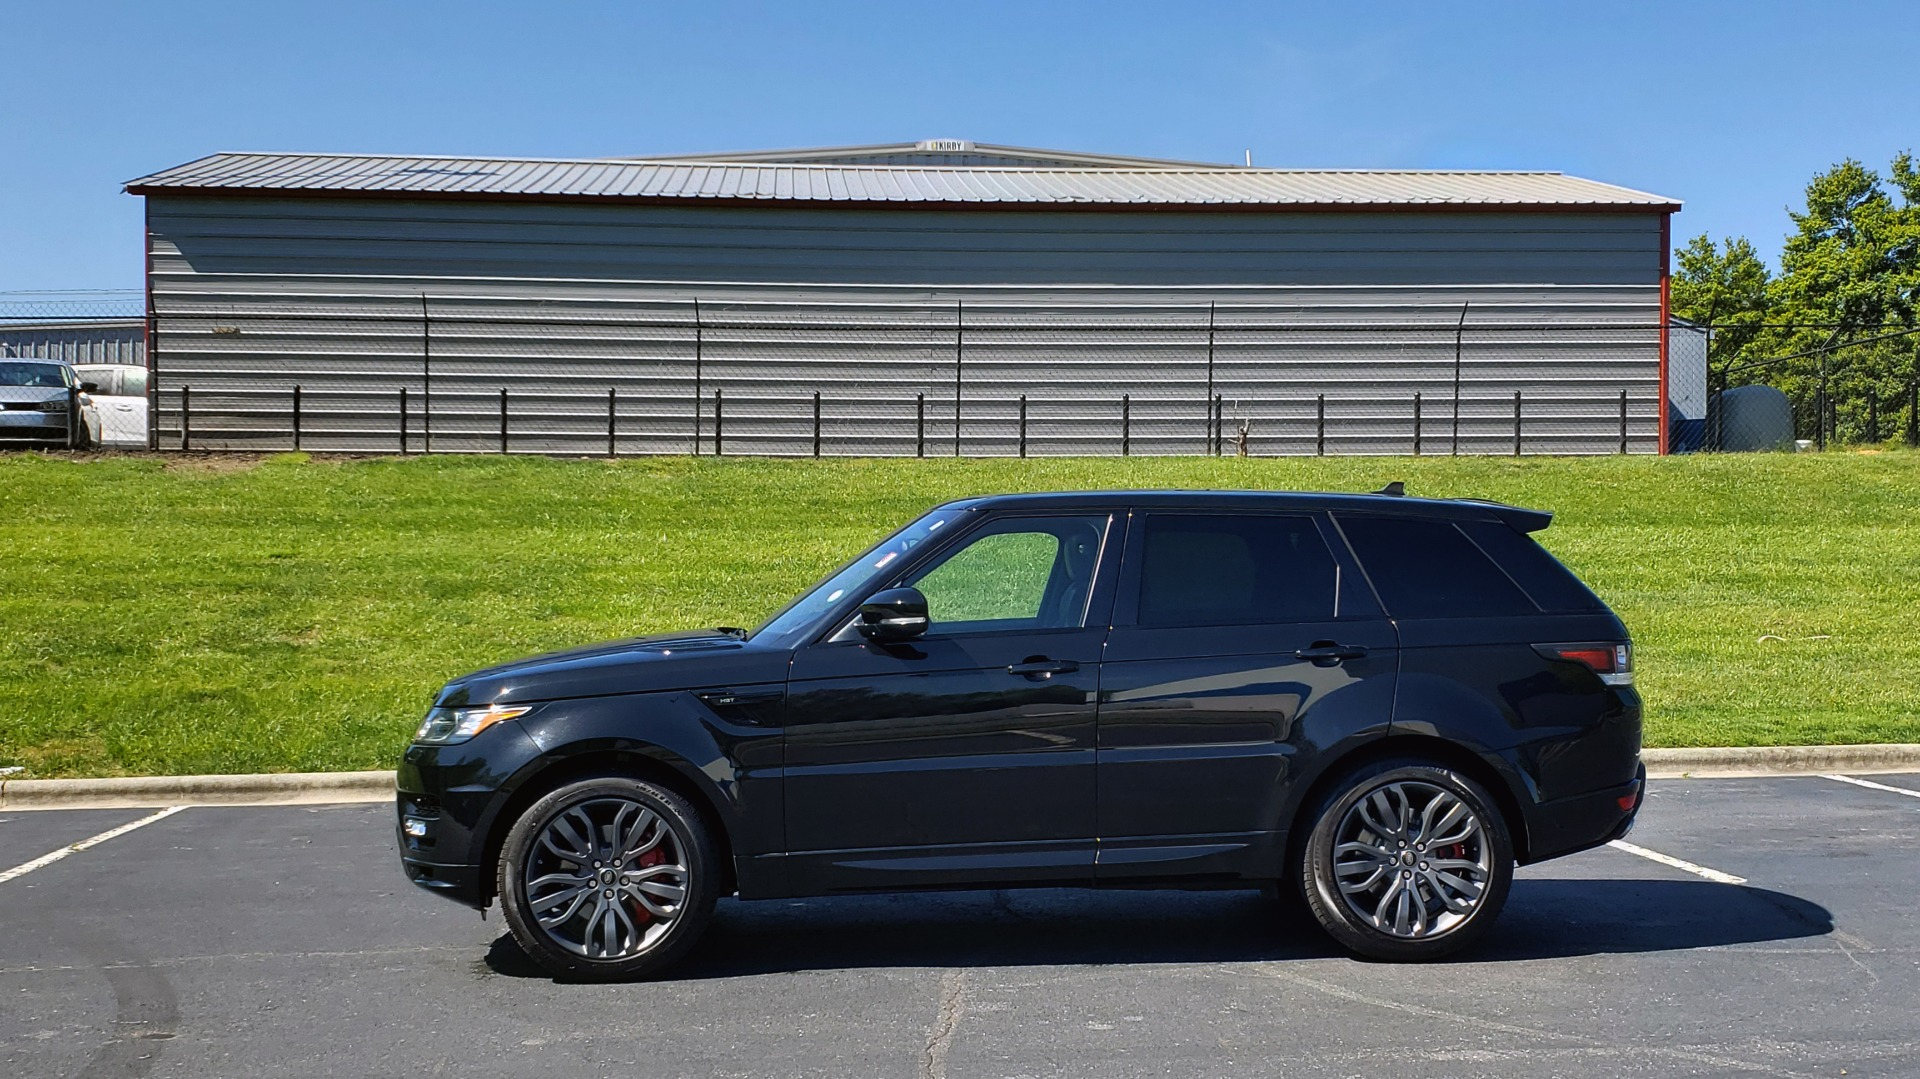 Used 2016 Land Rover RANGE ROVER SPORT SC V6 HSE HST / NAV / PANO-ROOF / MERIDIAN / REARVIEW for sale Sold at Formula Imports in Charlotte NC 28227 3